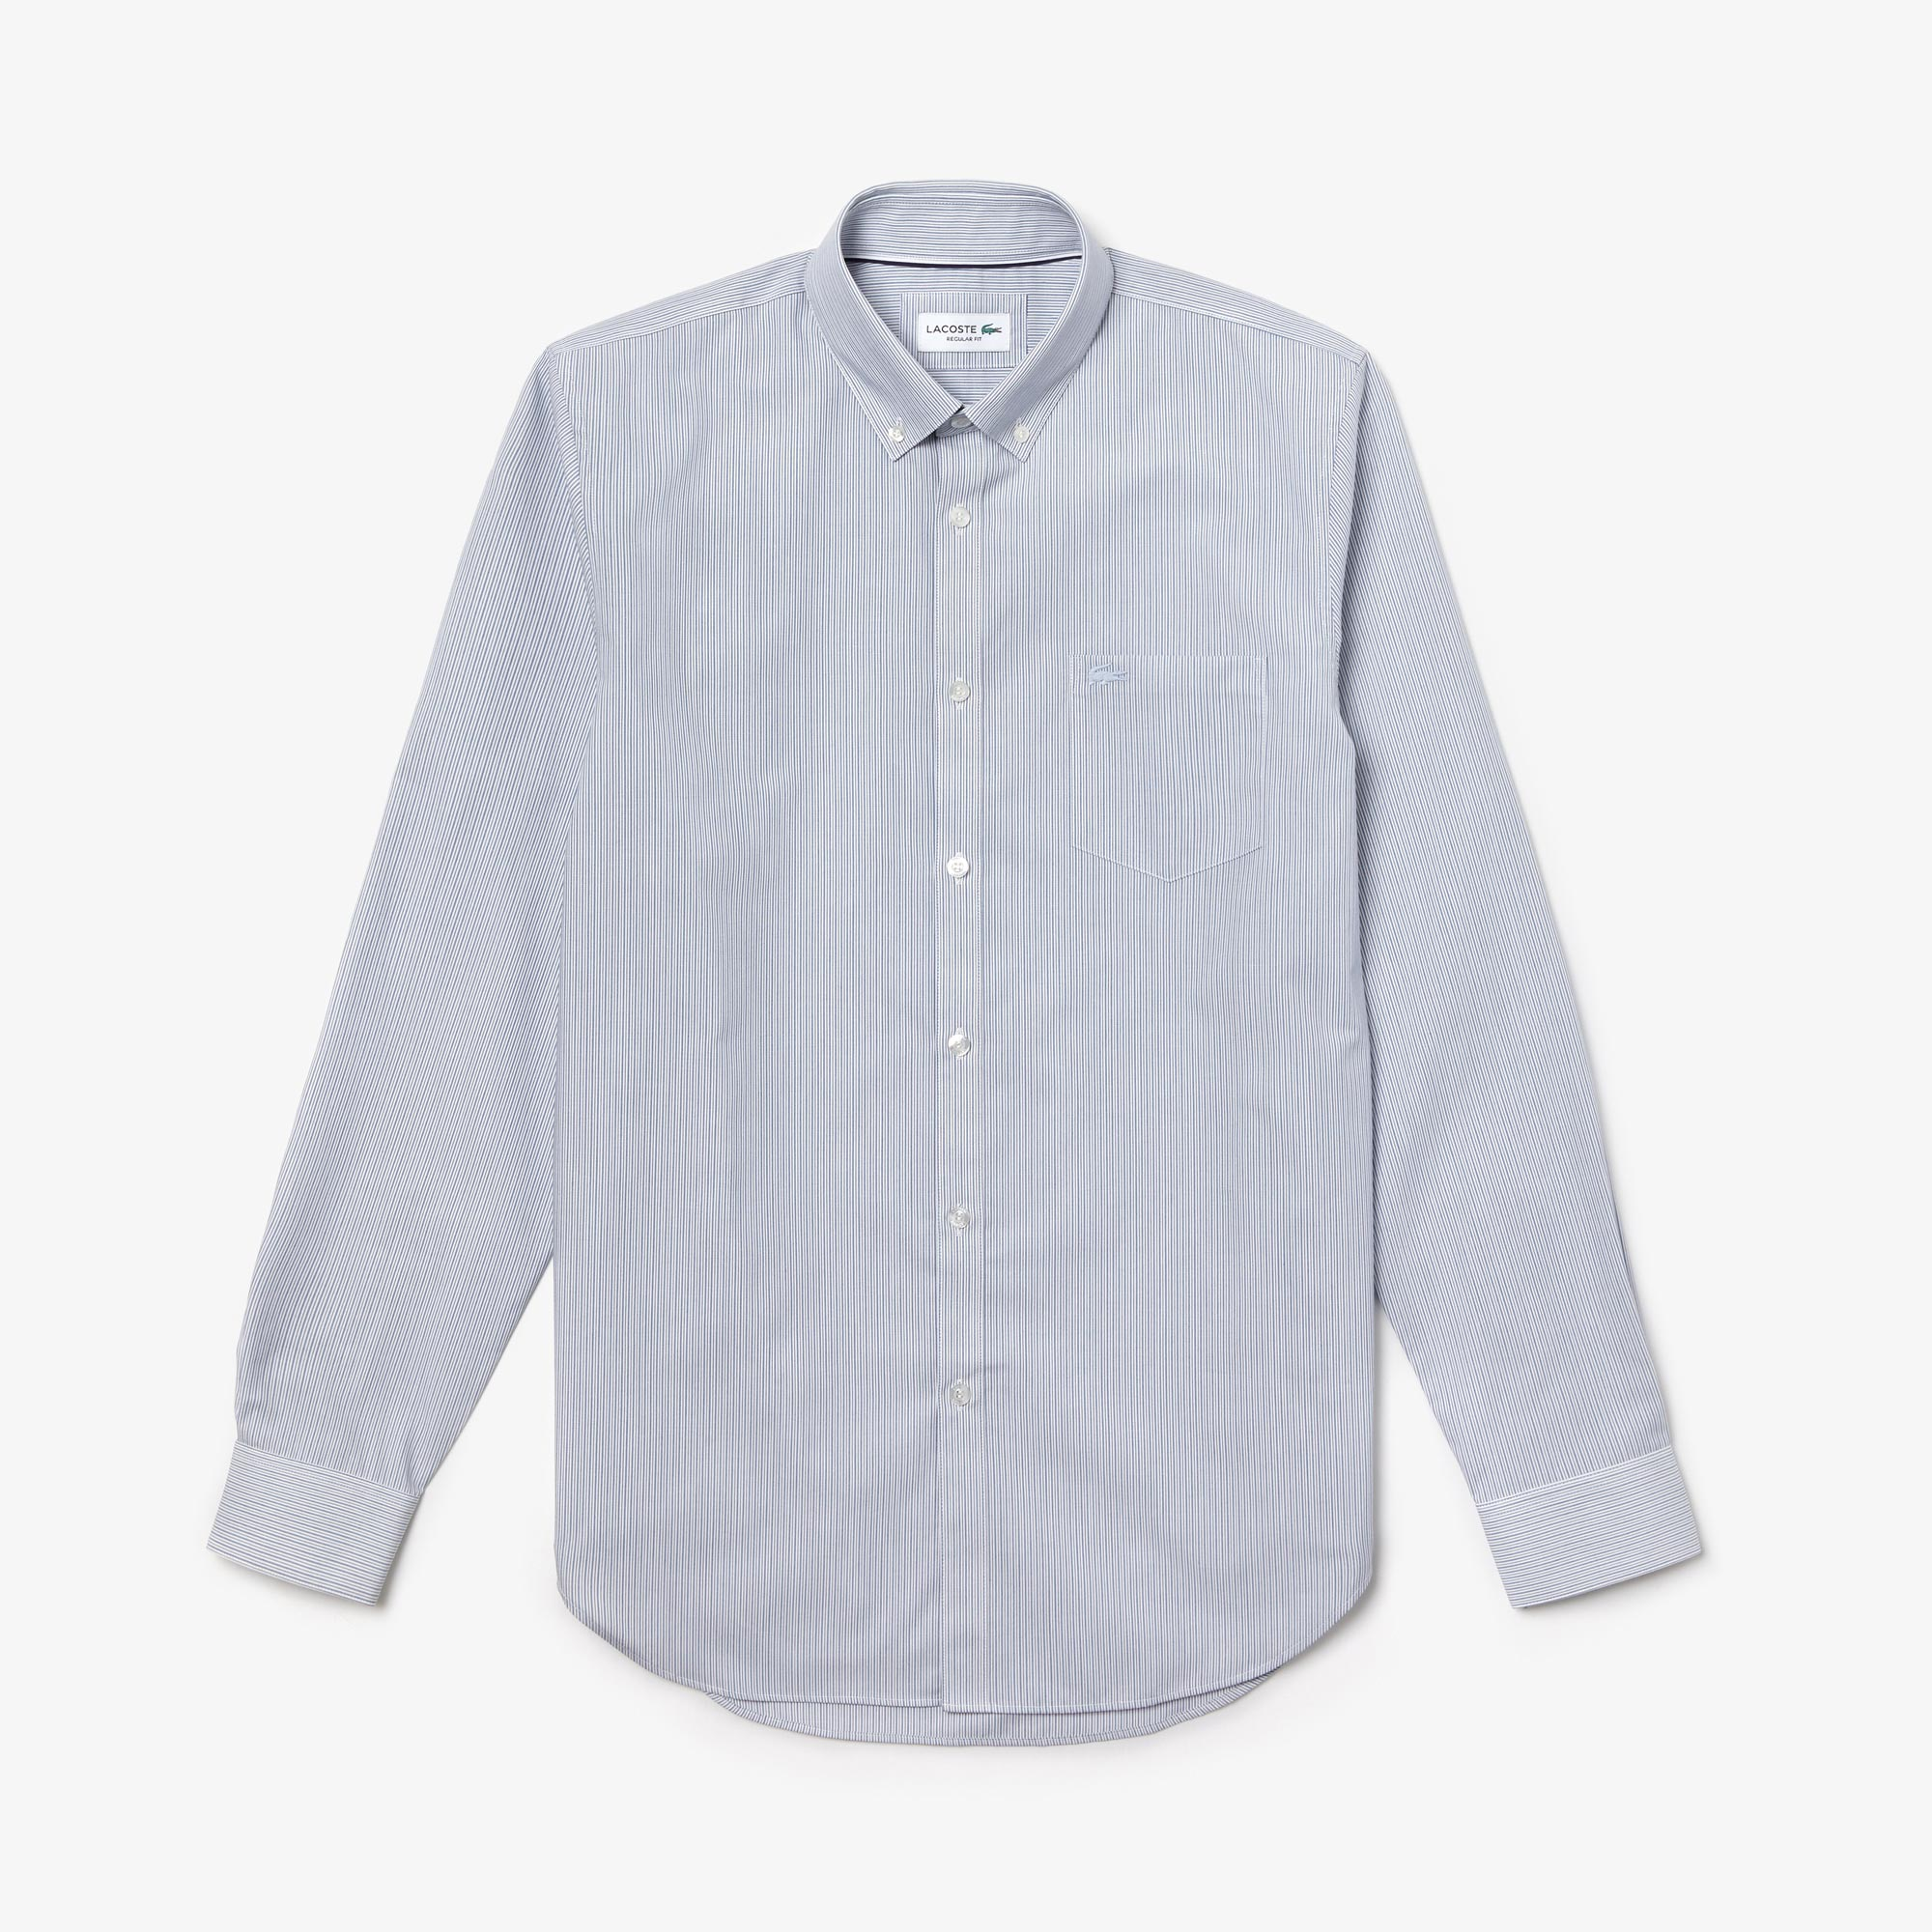 Men's Regular Fit Striped Cotton Poplin Shirt